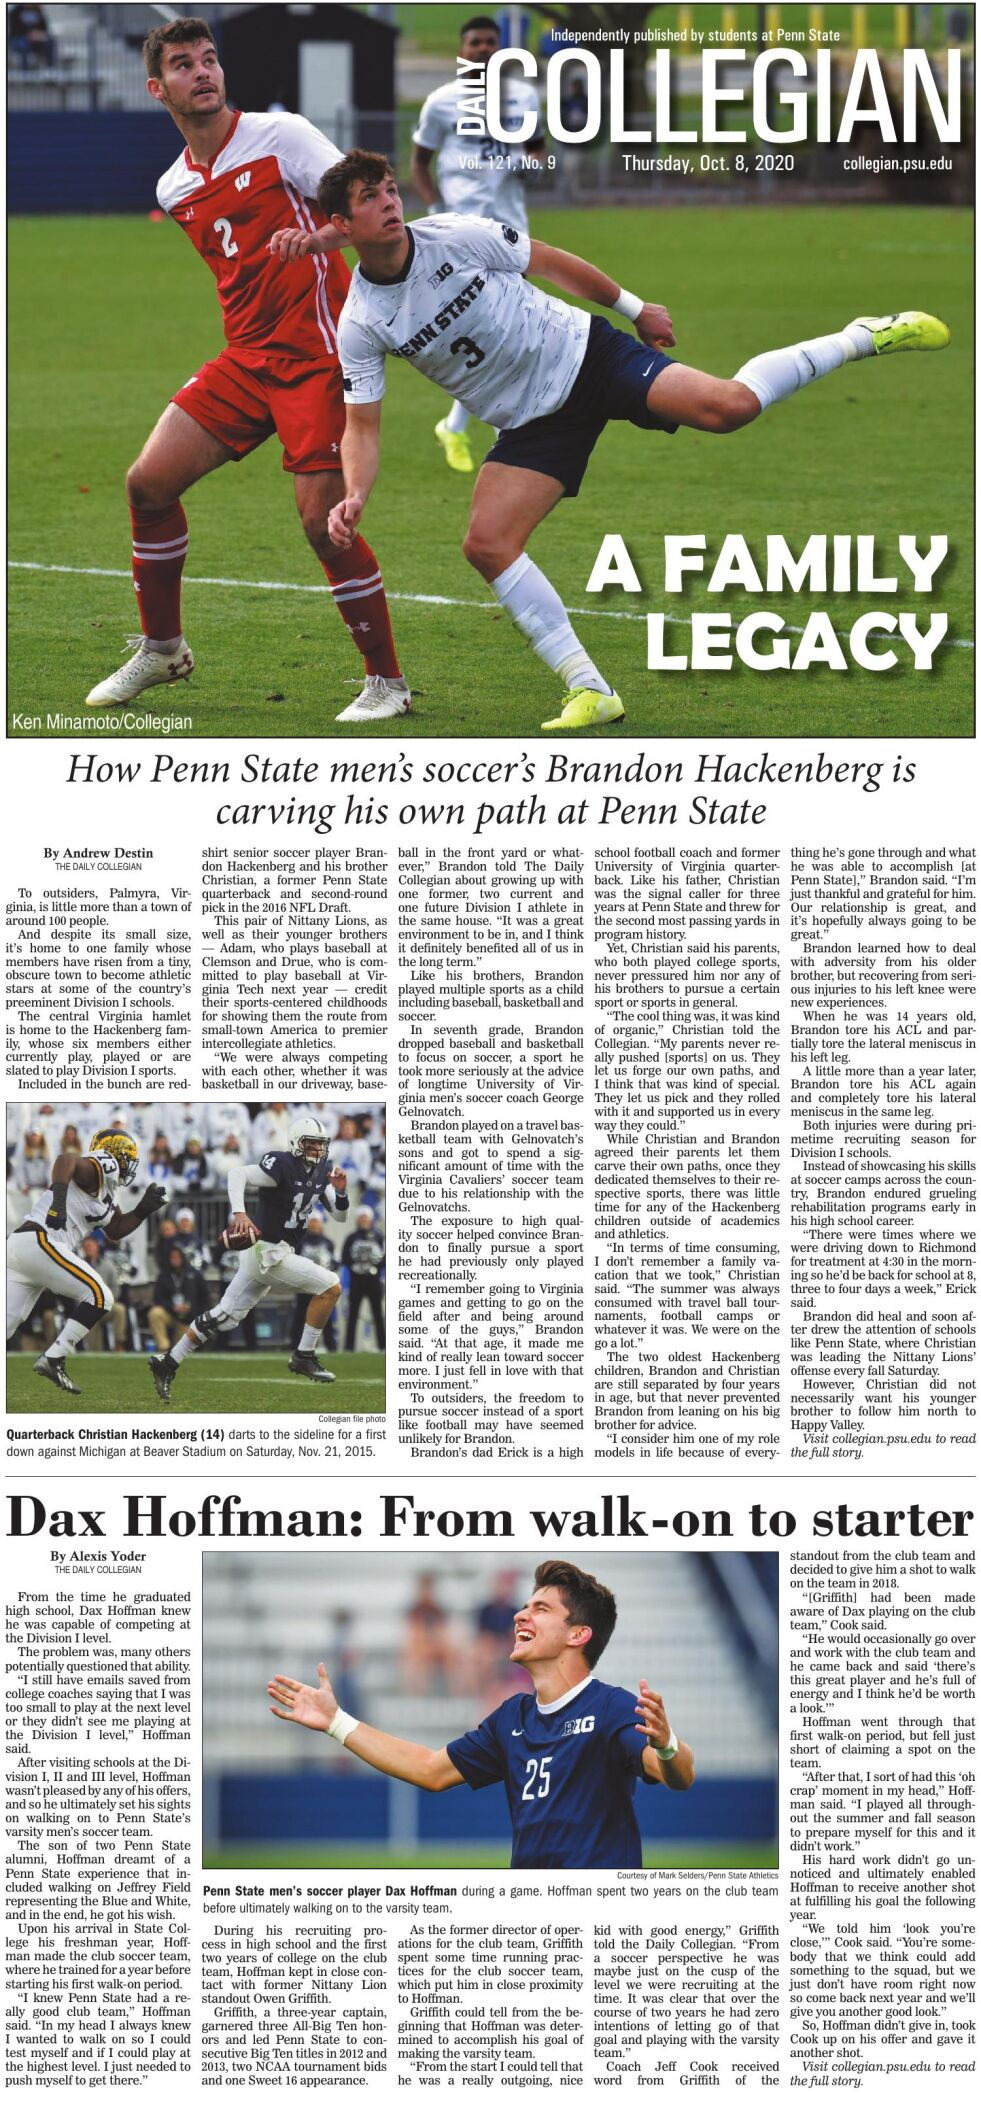 The Daily Collegian for Oct. 8, 2020